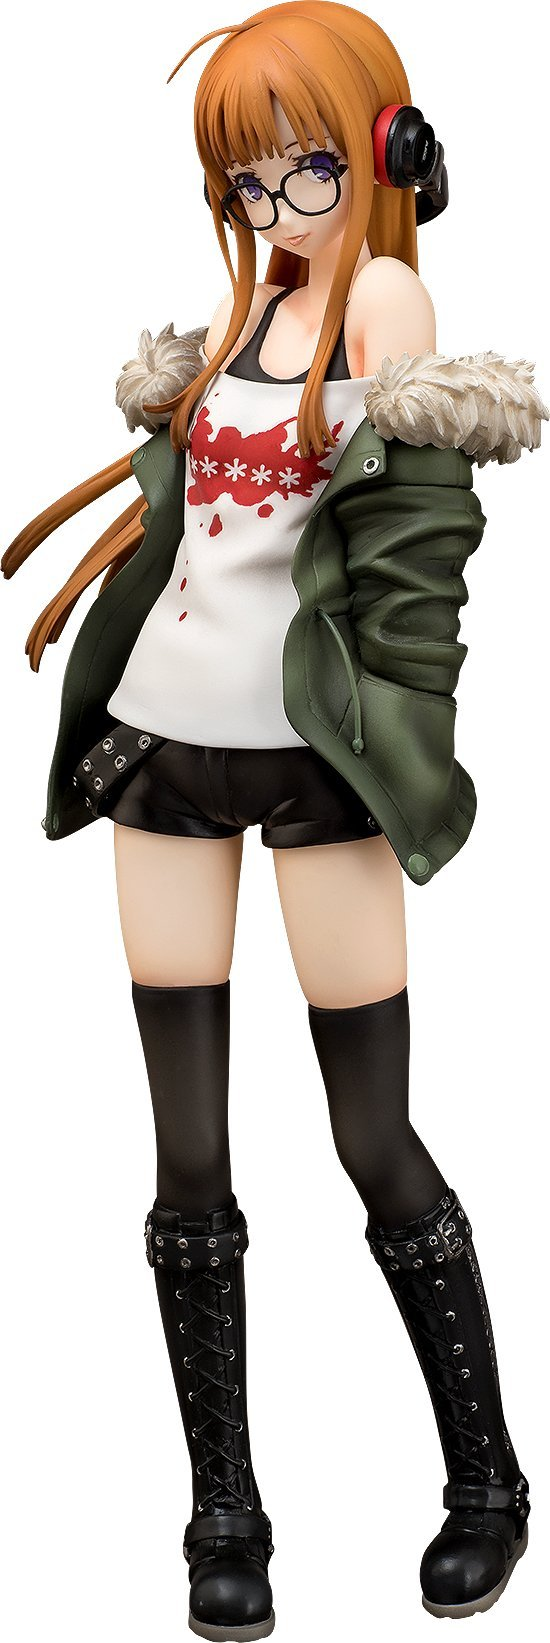 Phat Good Smile Persona 5 Futaba Sakura 1/7 PVC figure (Pre-order)-DREAM Playhouse